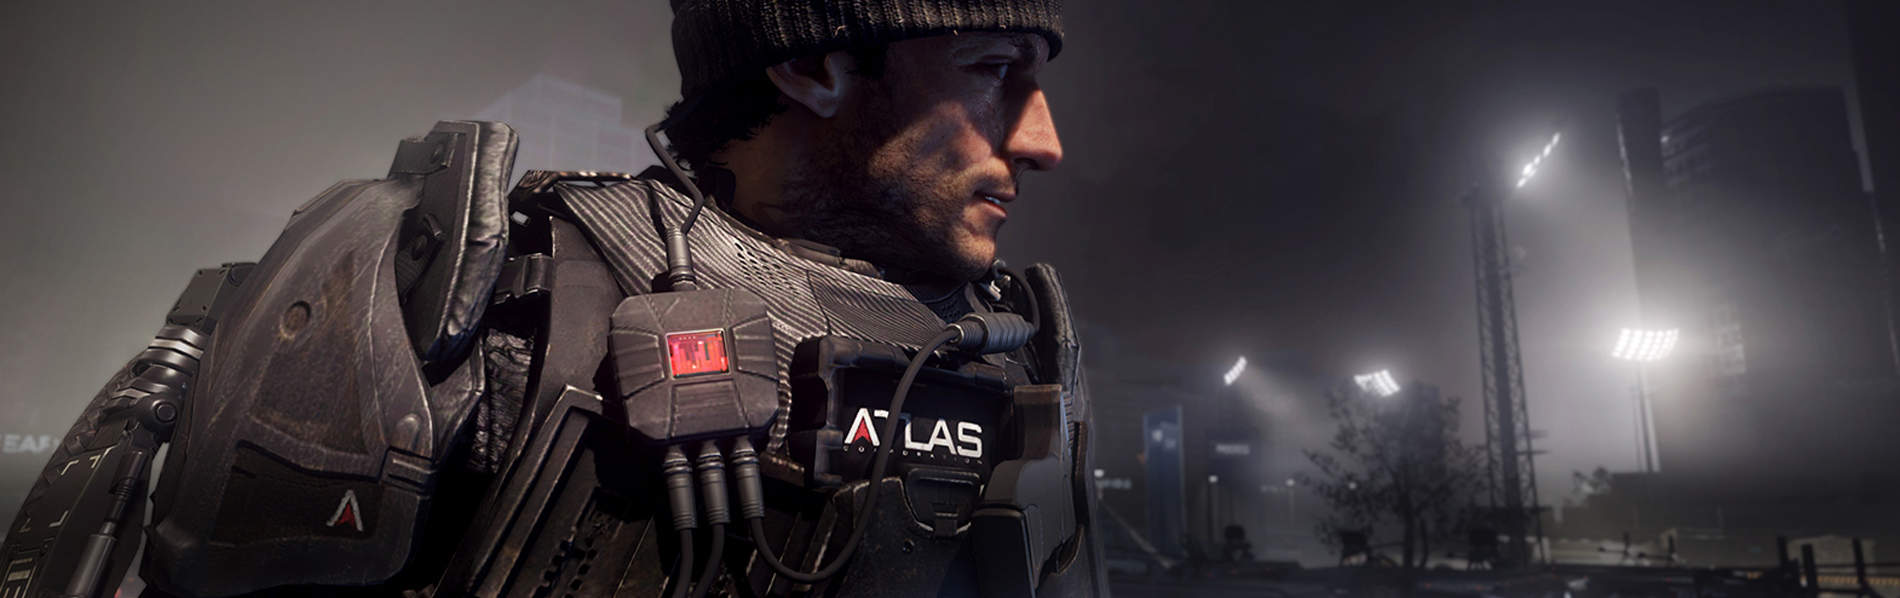 Call of Duty: Advanced Warfare—An Advanced Soldier